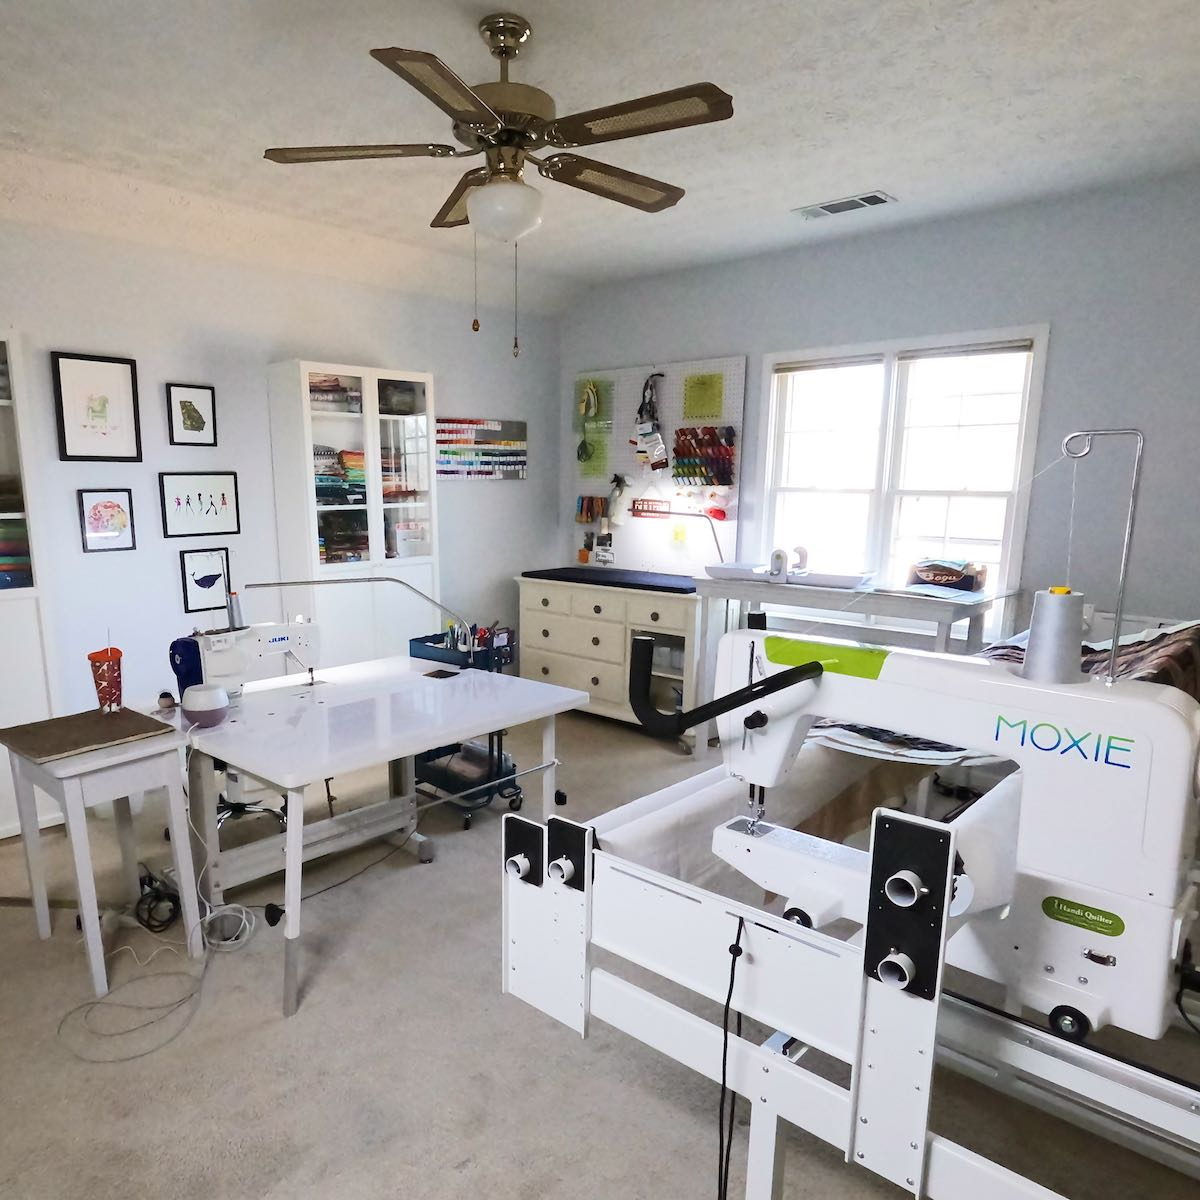 GO Getter Sewing Room - HollyAnneKnight